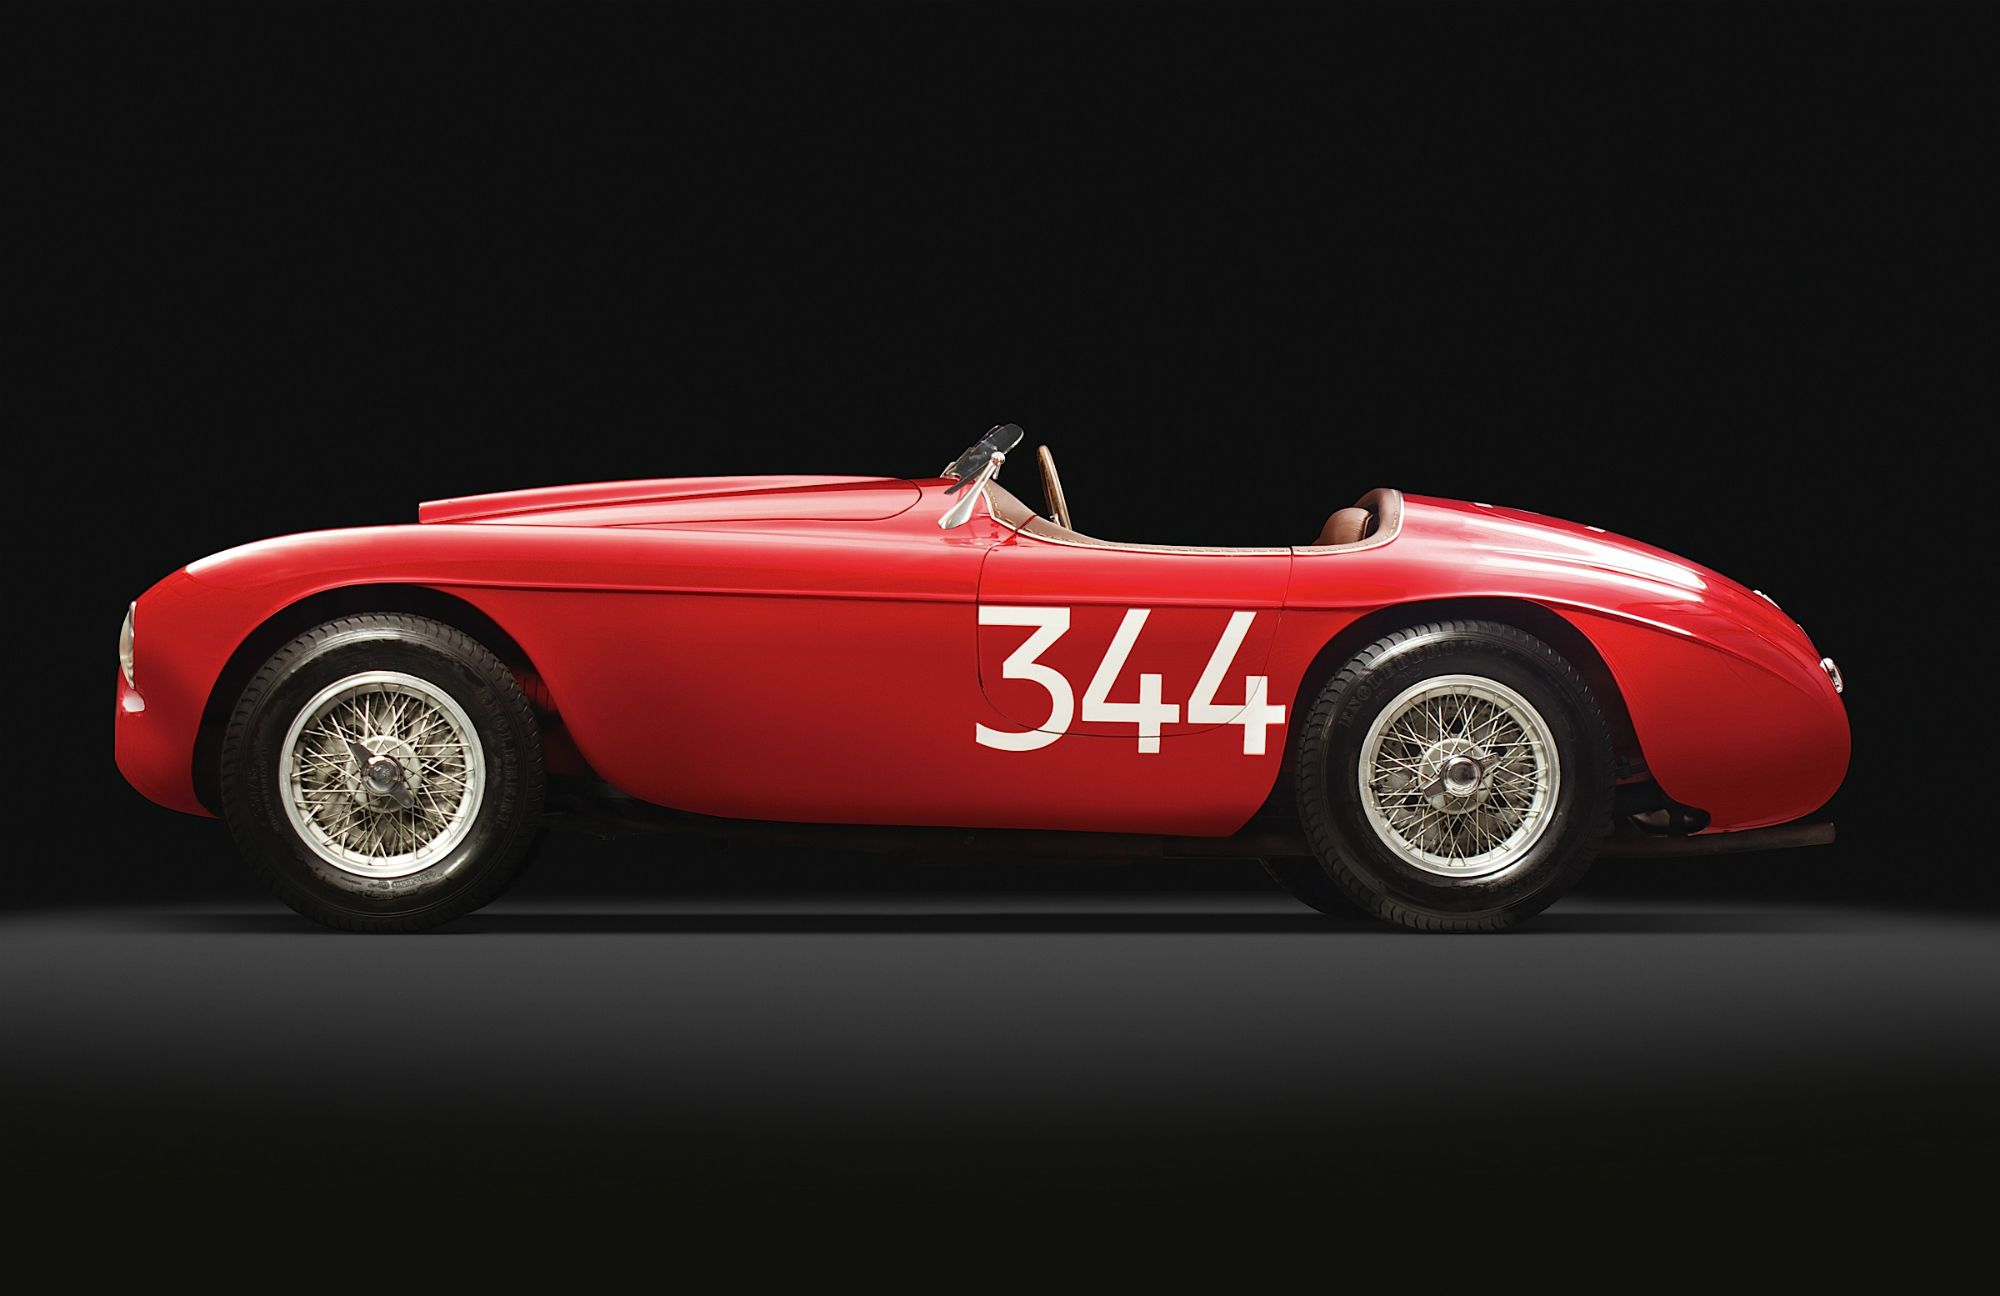 37+ Red barchetta for sale background